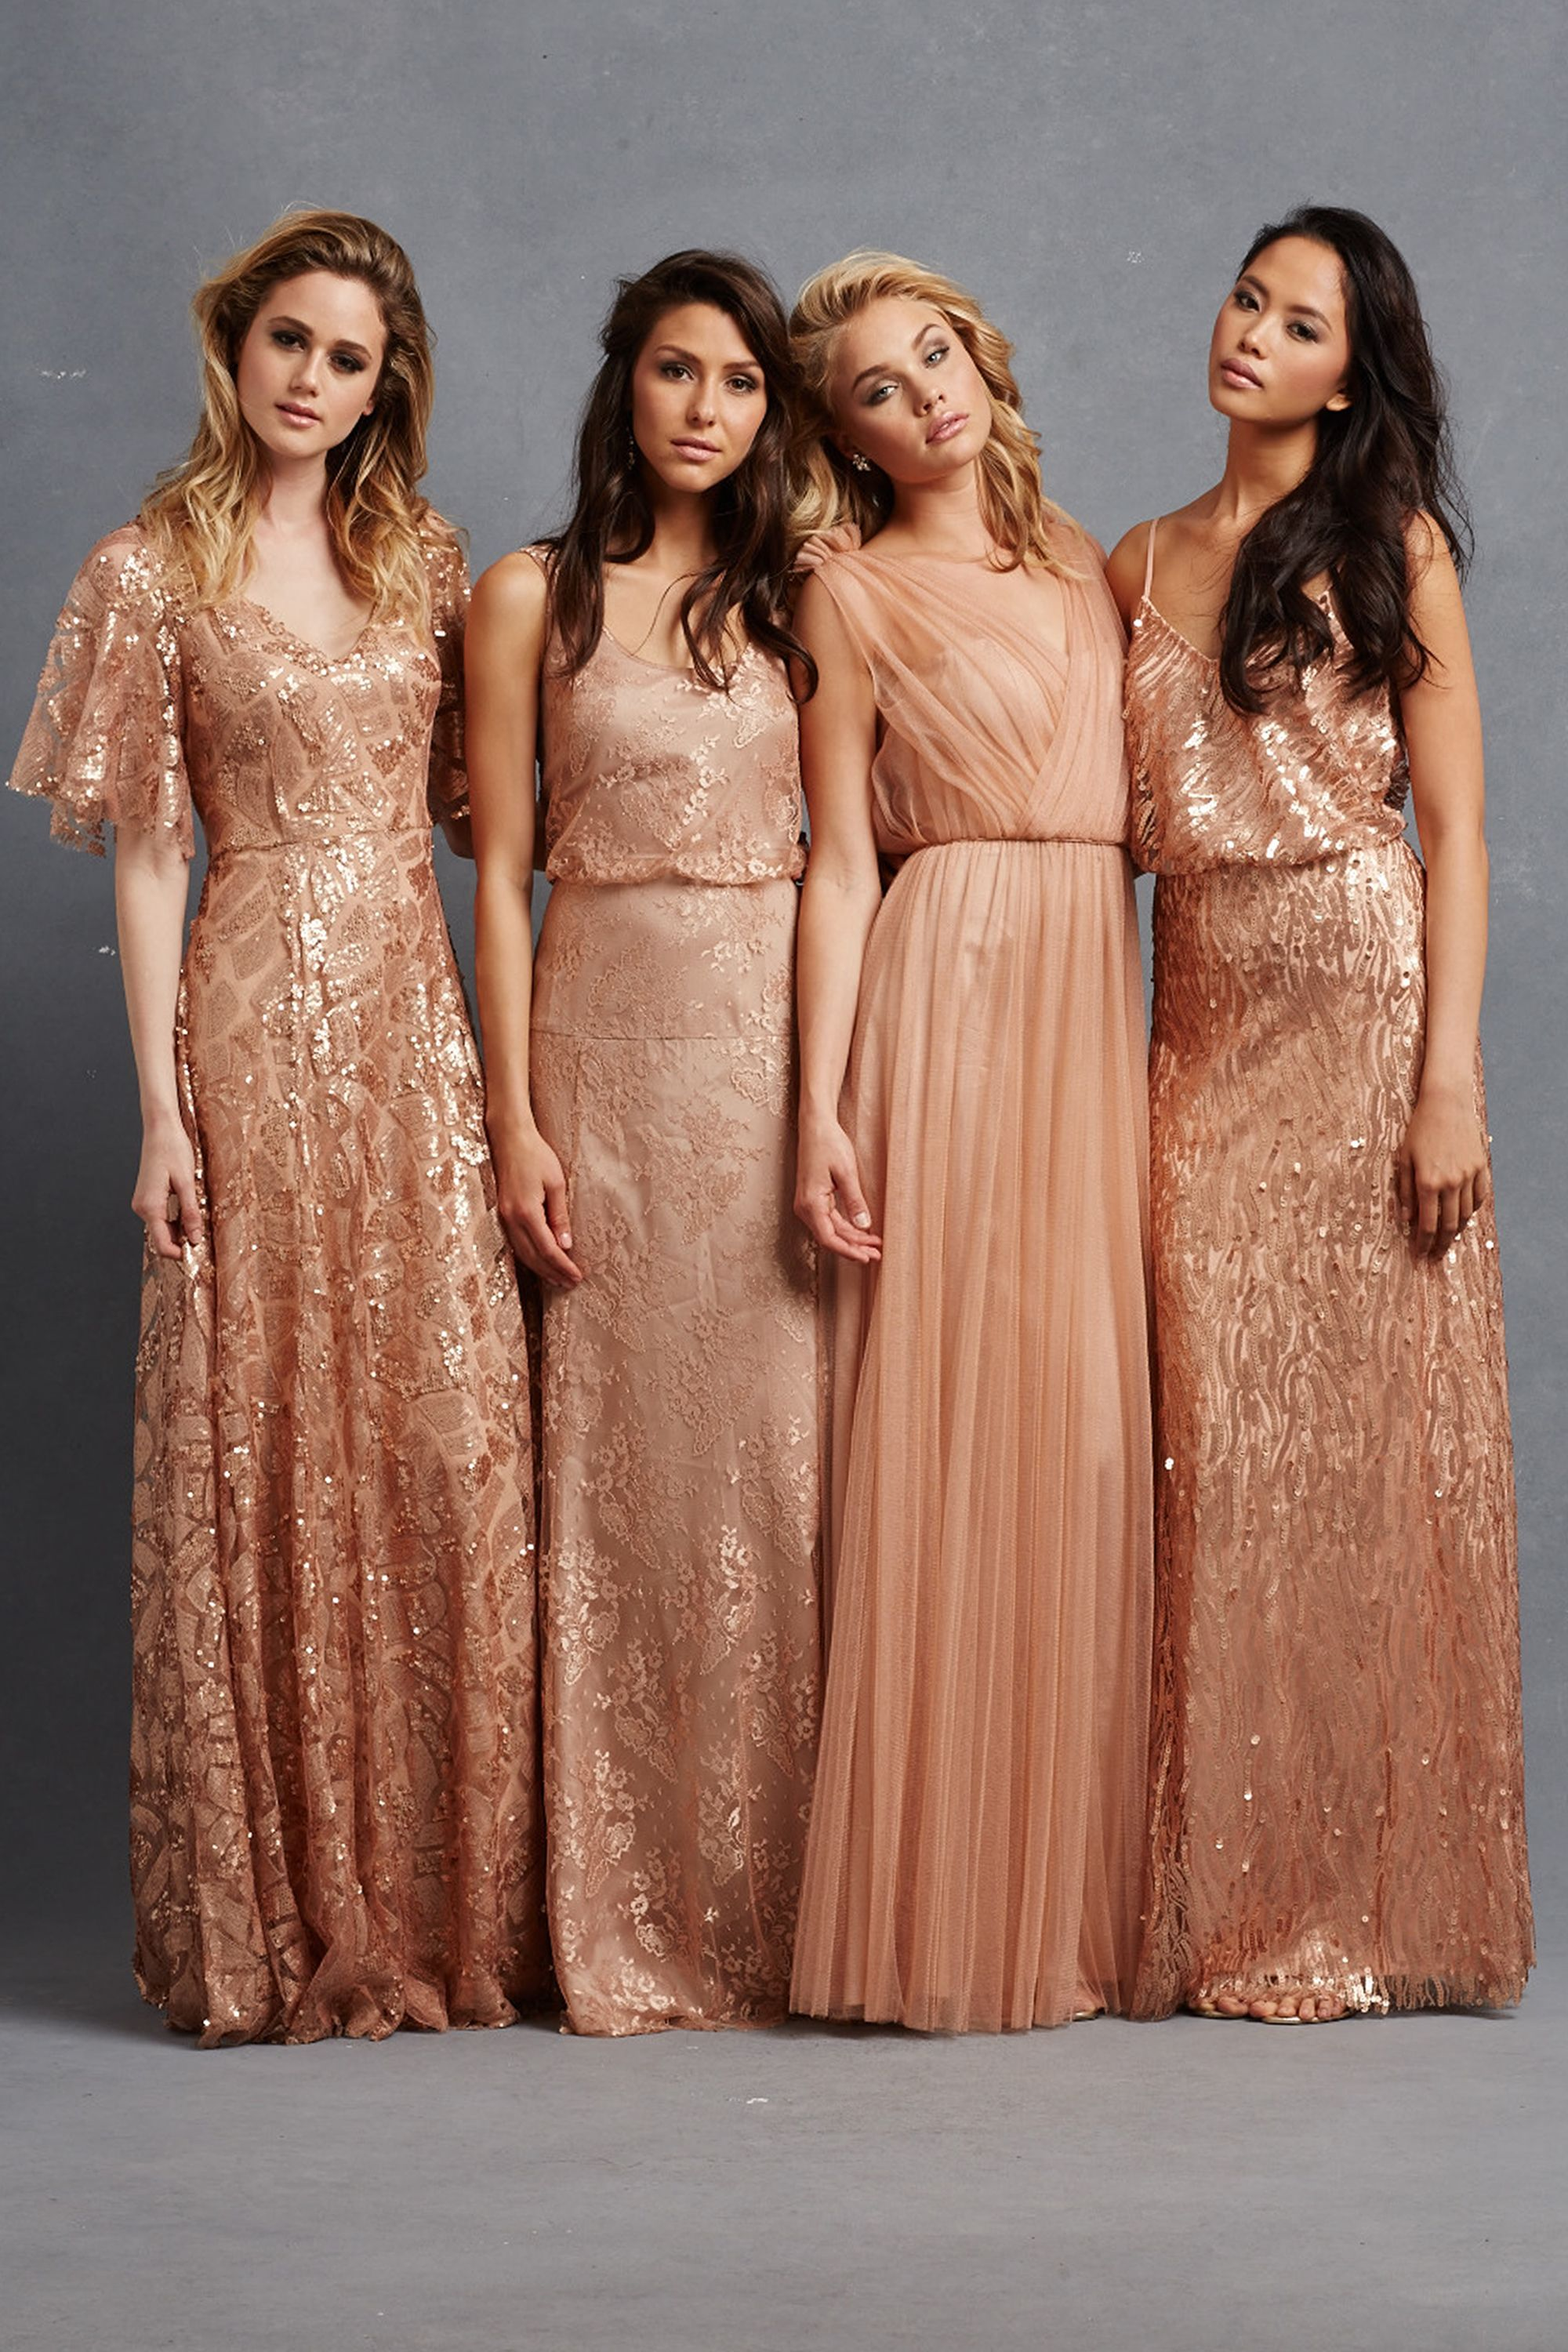 Donna morgans new serenity collection launches on june 15th new donna morgan bridesmaid dresses camilla natalya courtney emmy gowns flutter sleeves blouson sleeveless peach copper rose gold how beautiful ombrellifo Images